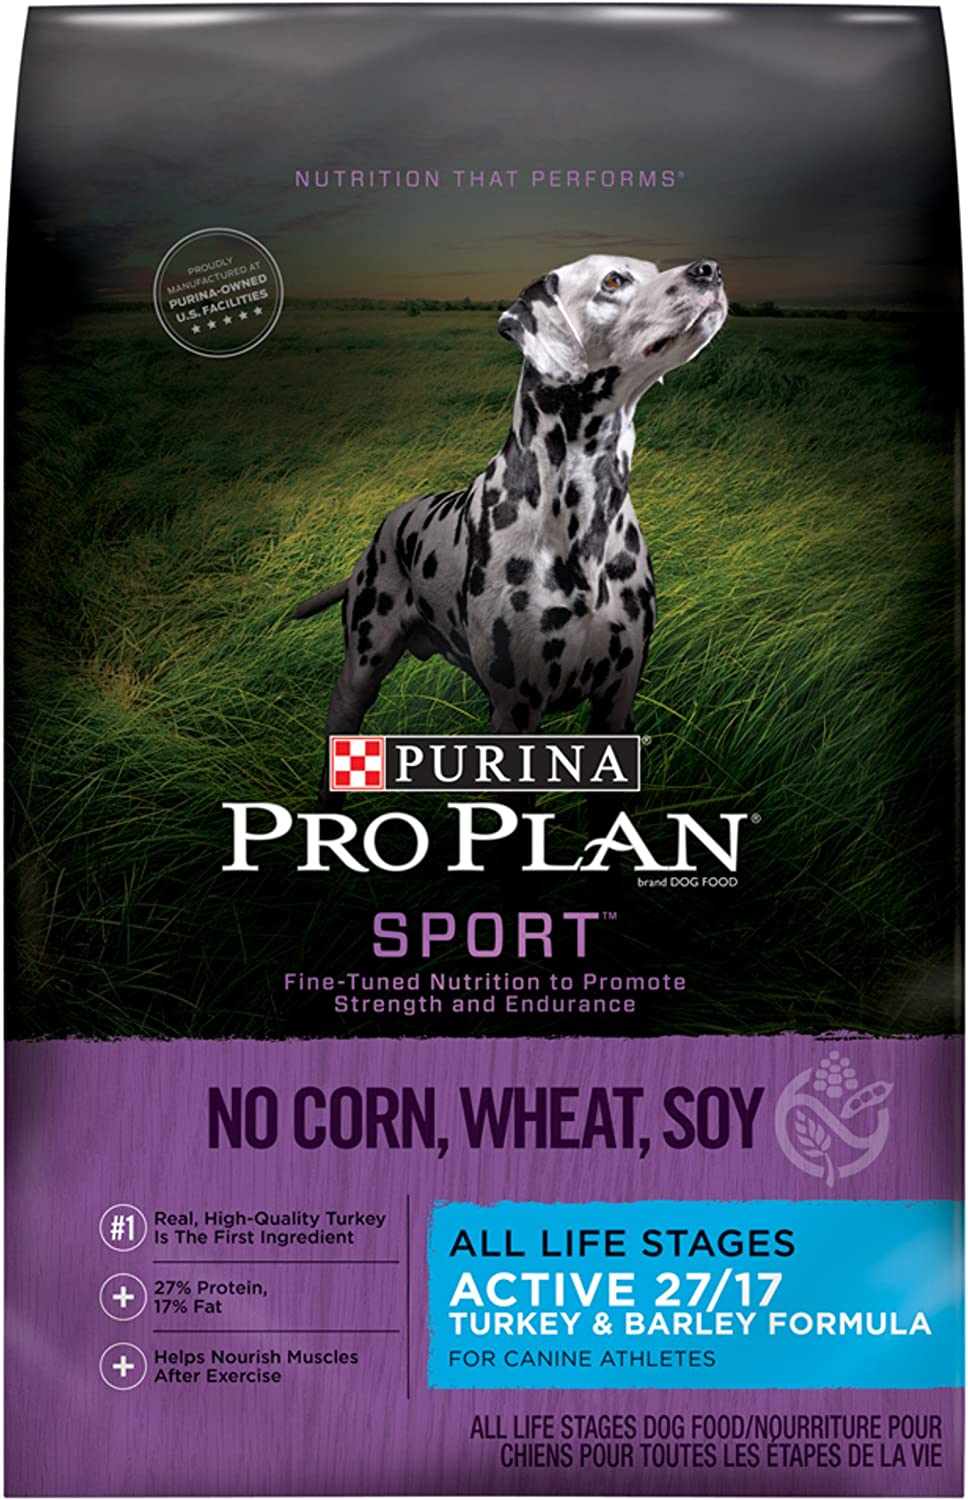 Purina Pro Plan Dry Dog Food, Select, All Life Stages, Natural Turkey and Barley Formula, 33Pound Bag, Pack of 1